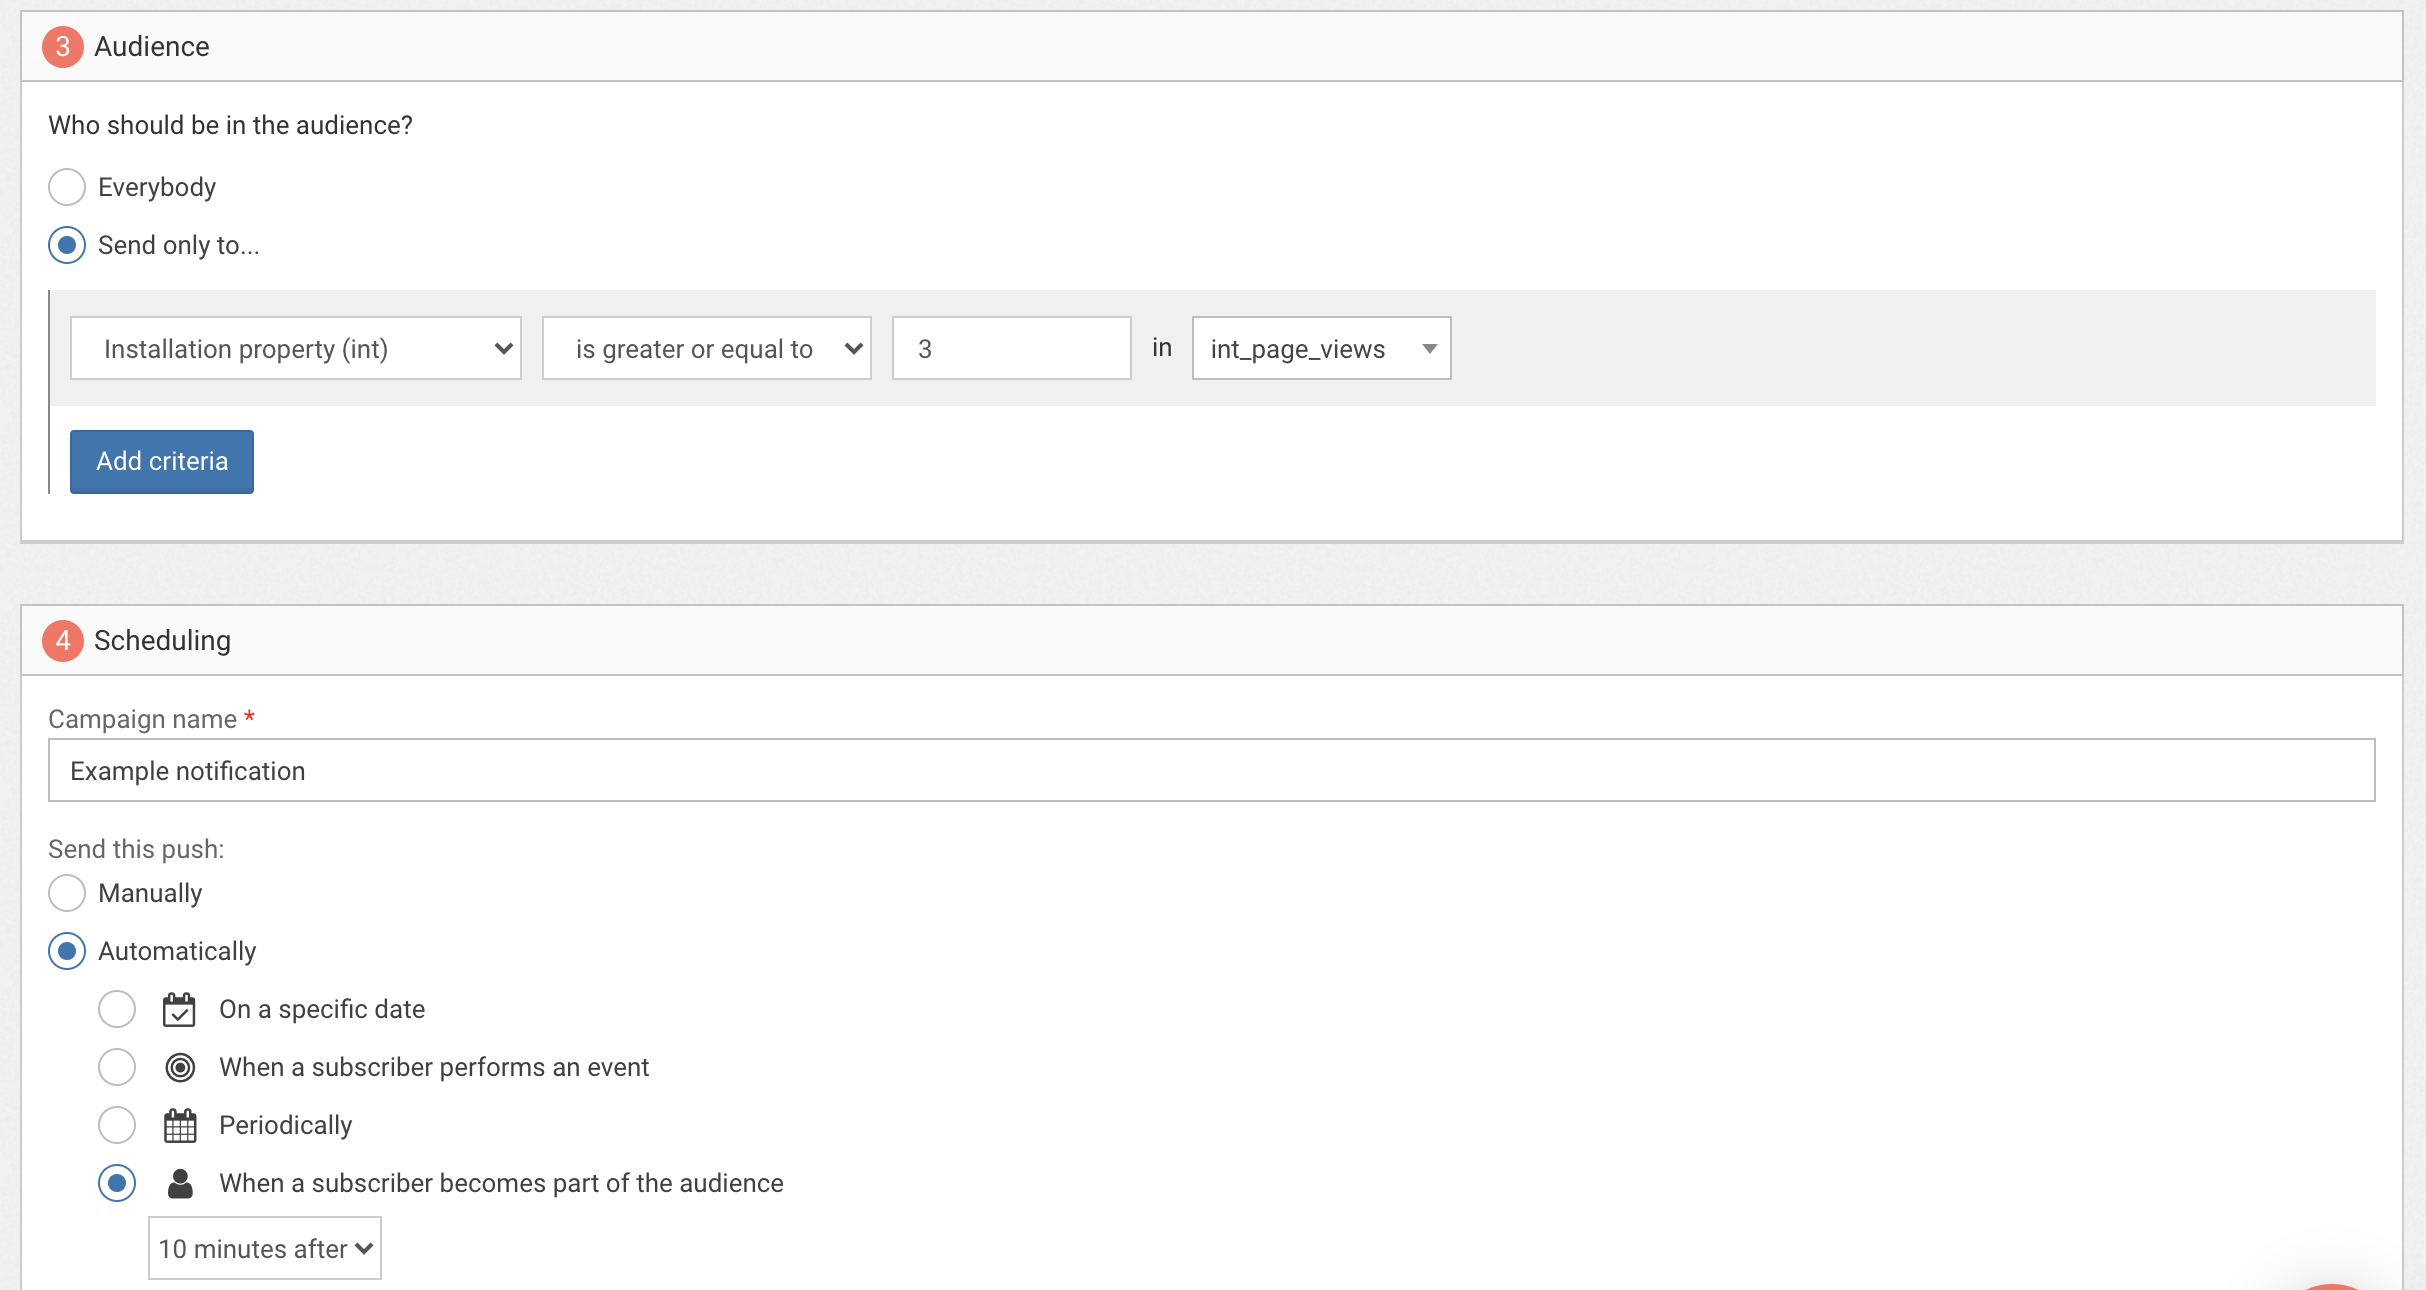 Example of an automated notification scheduled to be sent 10 minutes after the user reaches 3 page views.